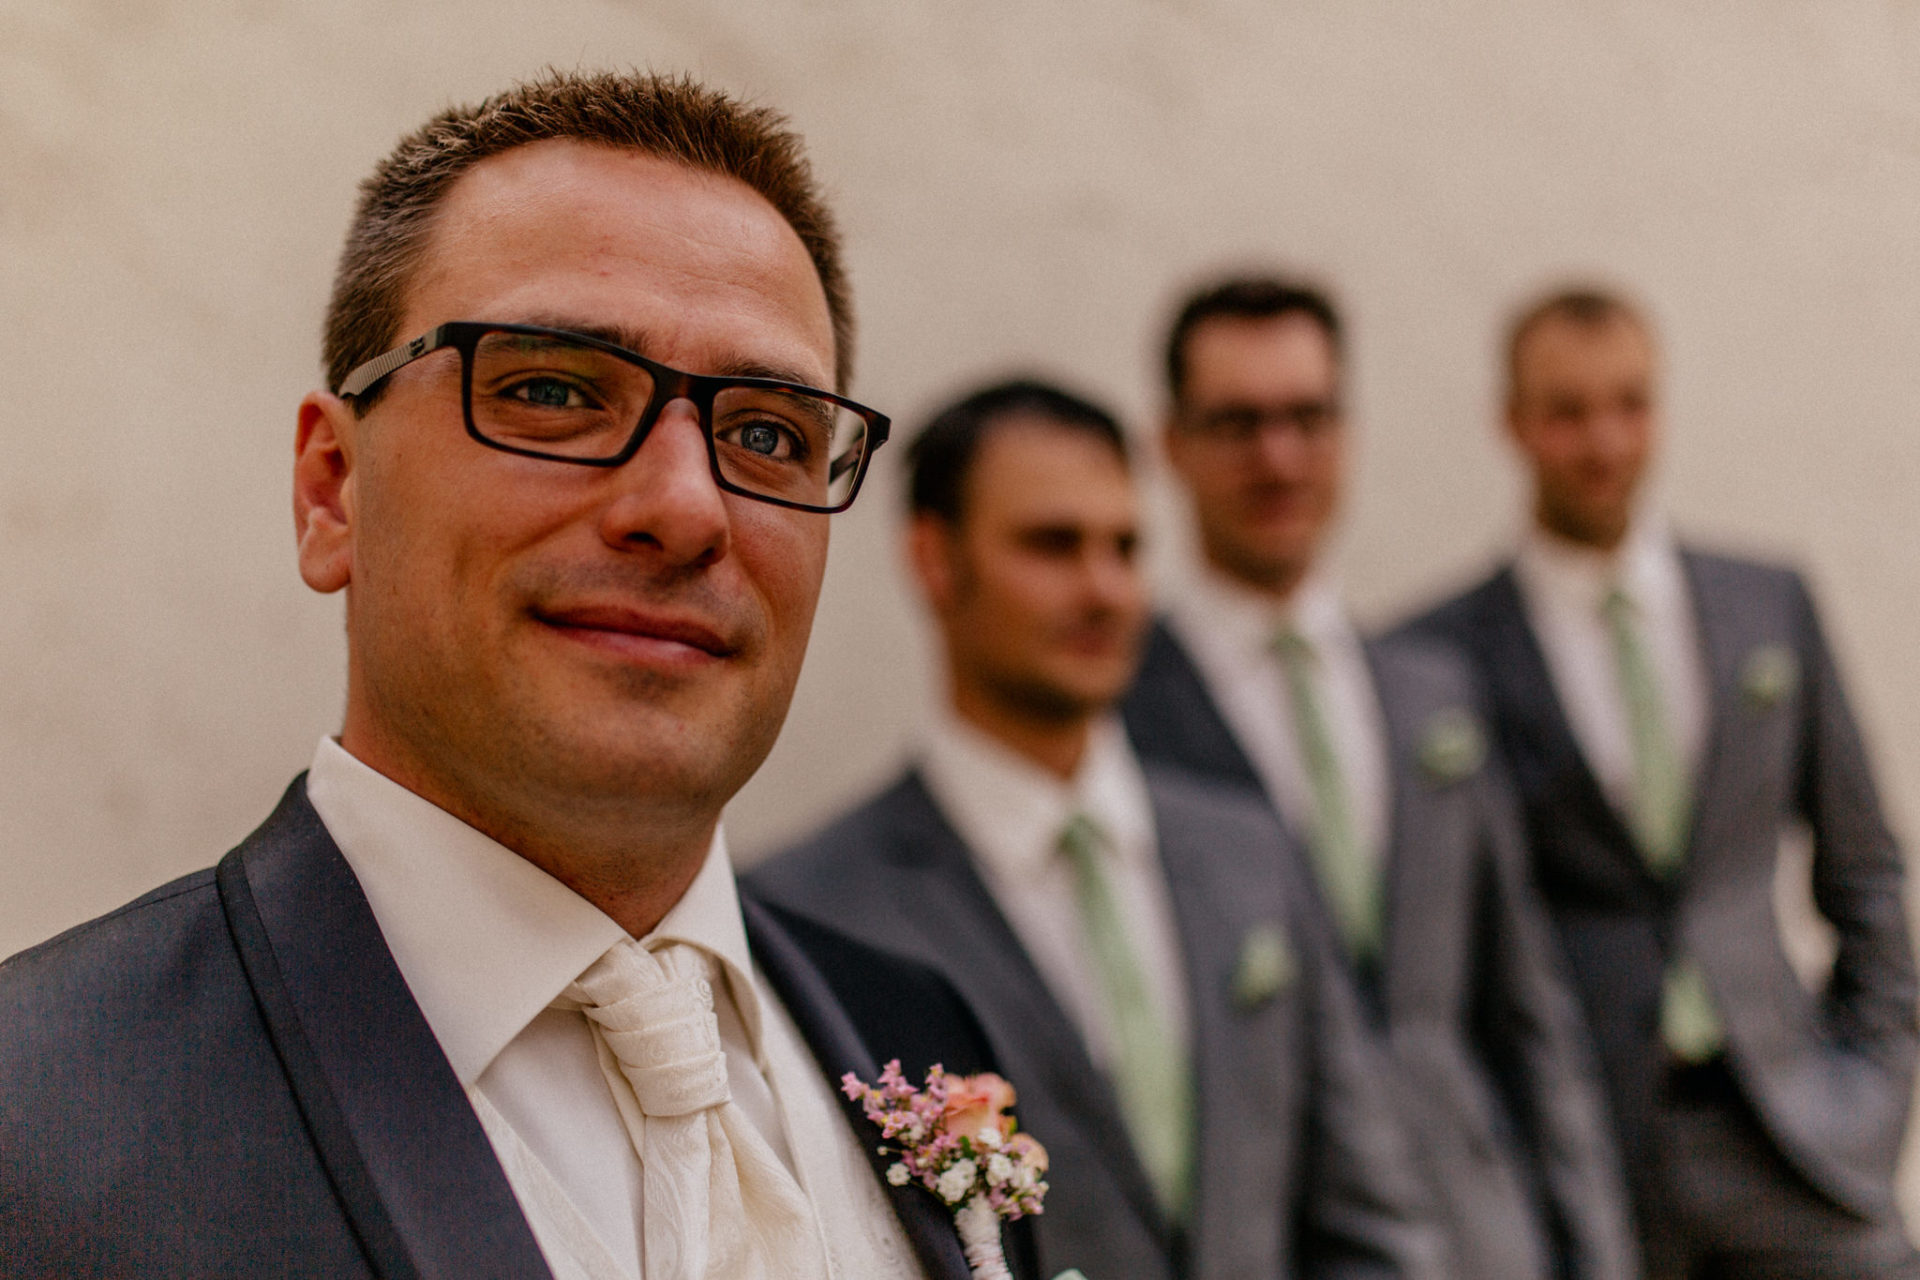 stuttgart wedding photographer-Castle Wedding Germany-Blackforest marriage-schloss heinsheim groom with groomsmen